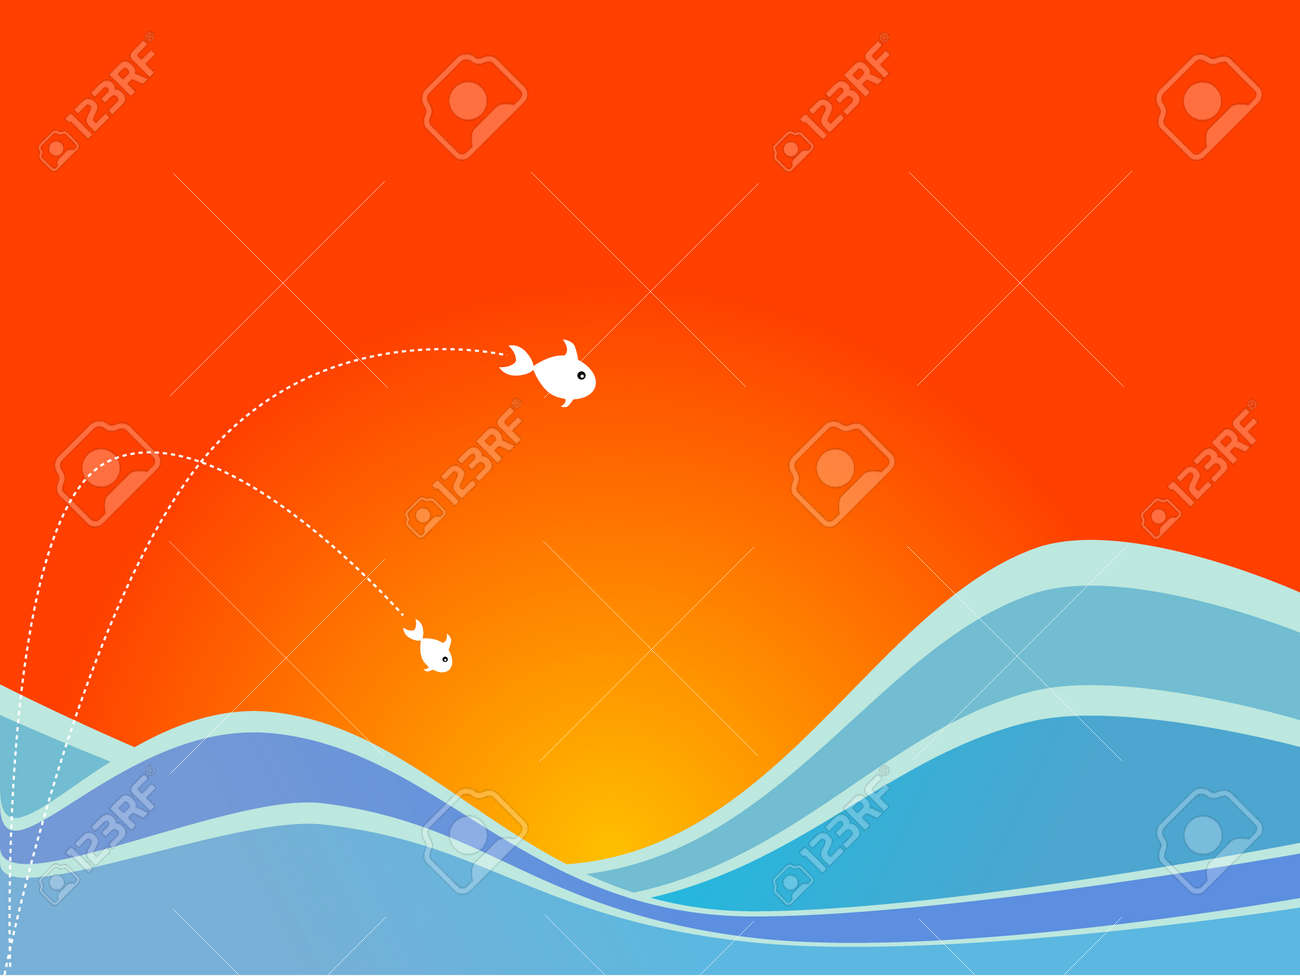 Fish flying out of the sea into the air against a sunny background. Stock Vector - 1390870